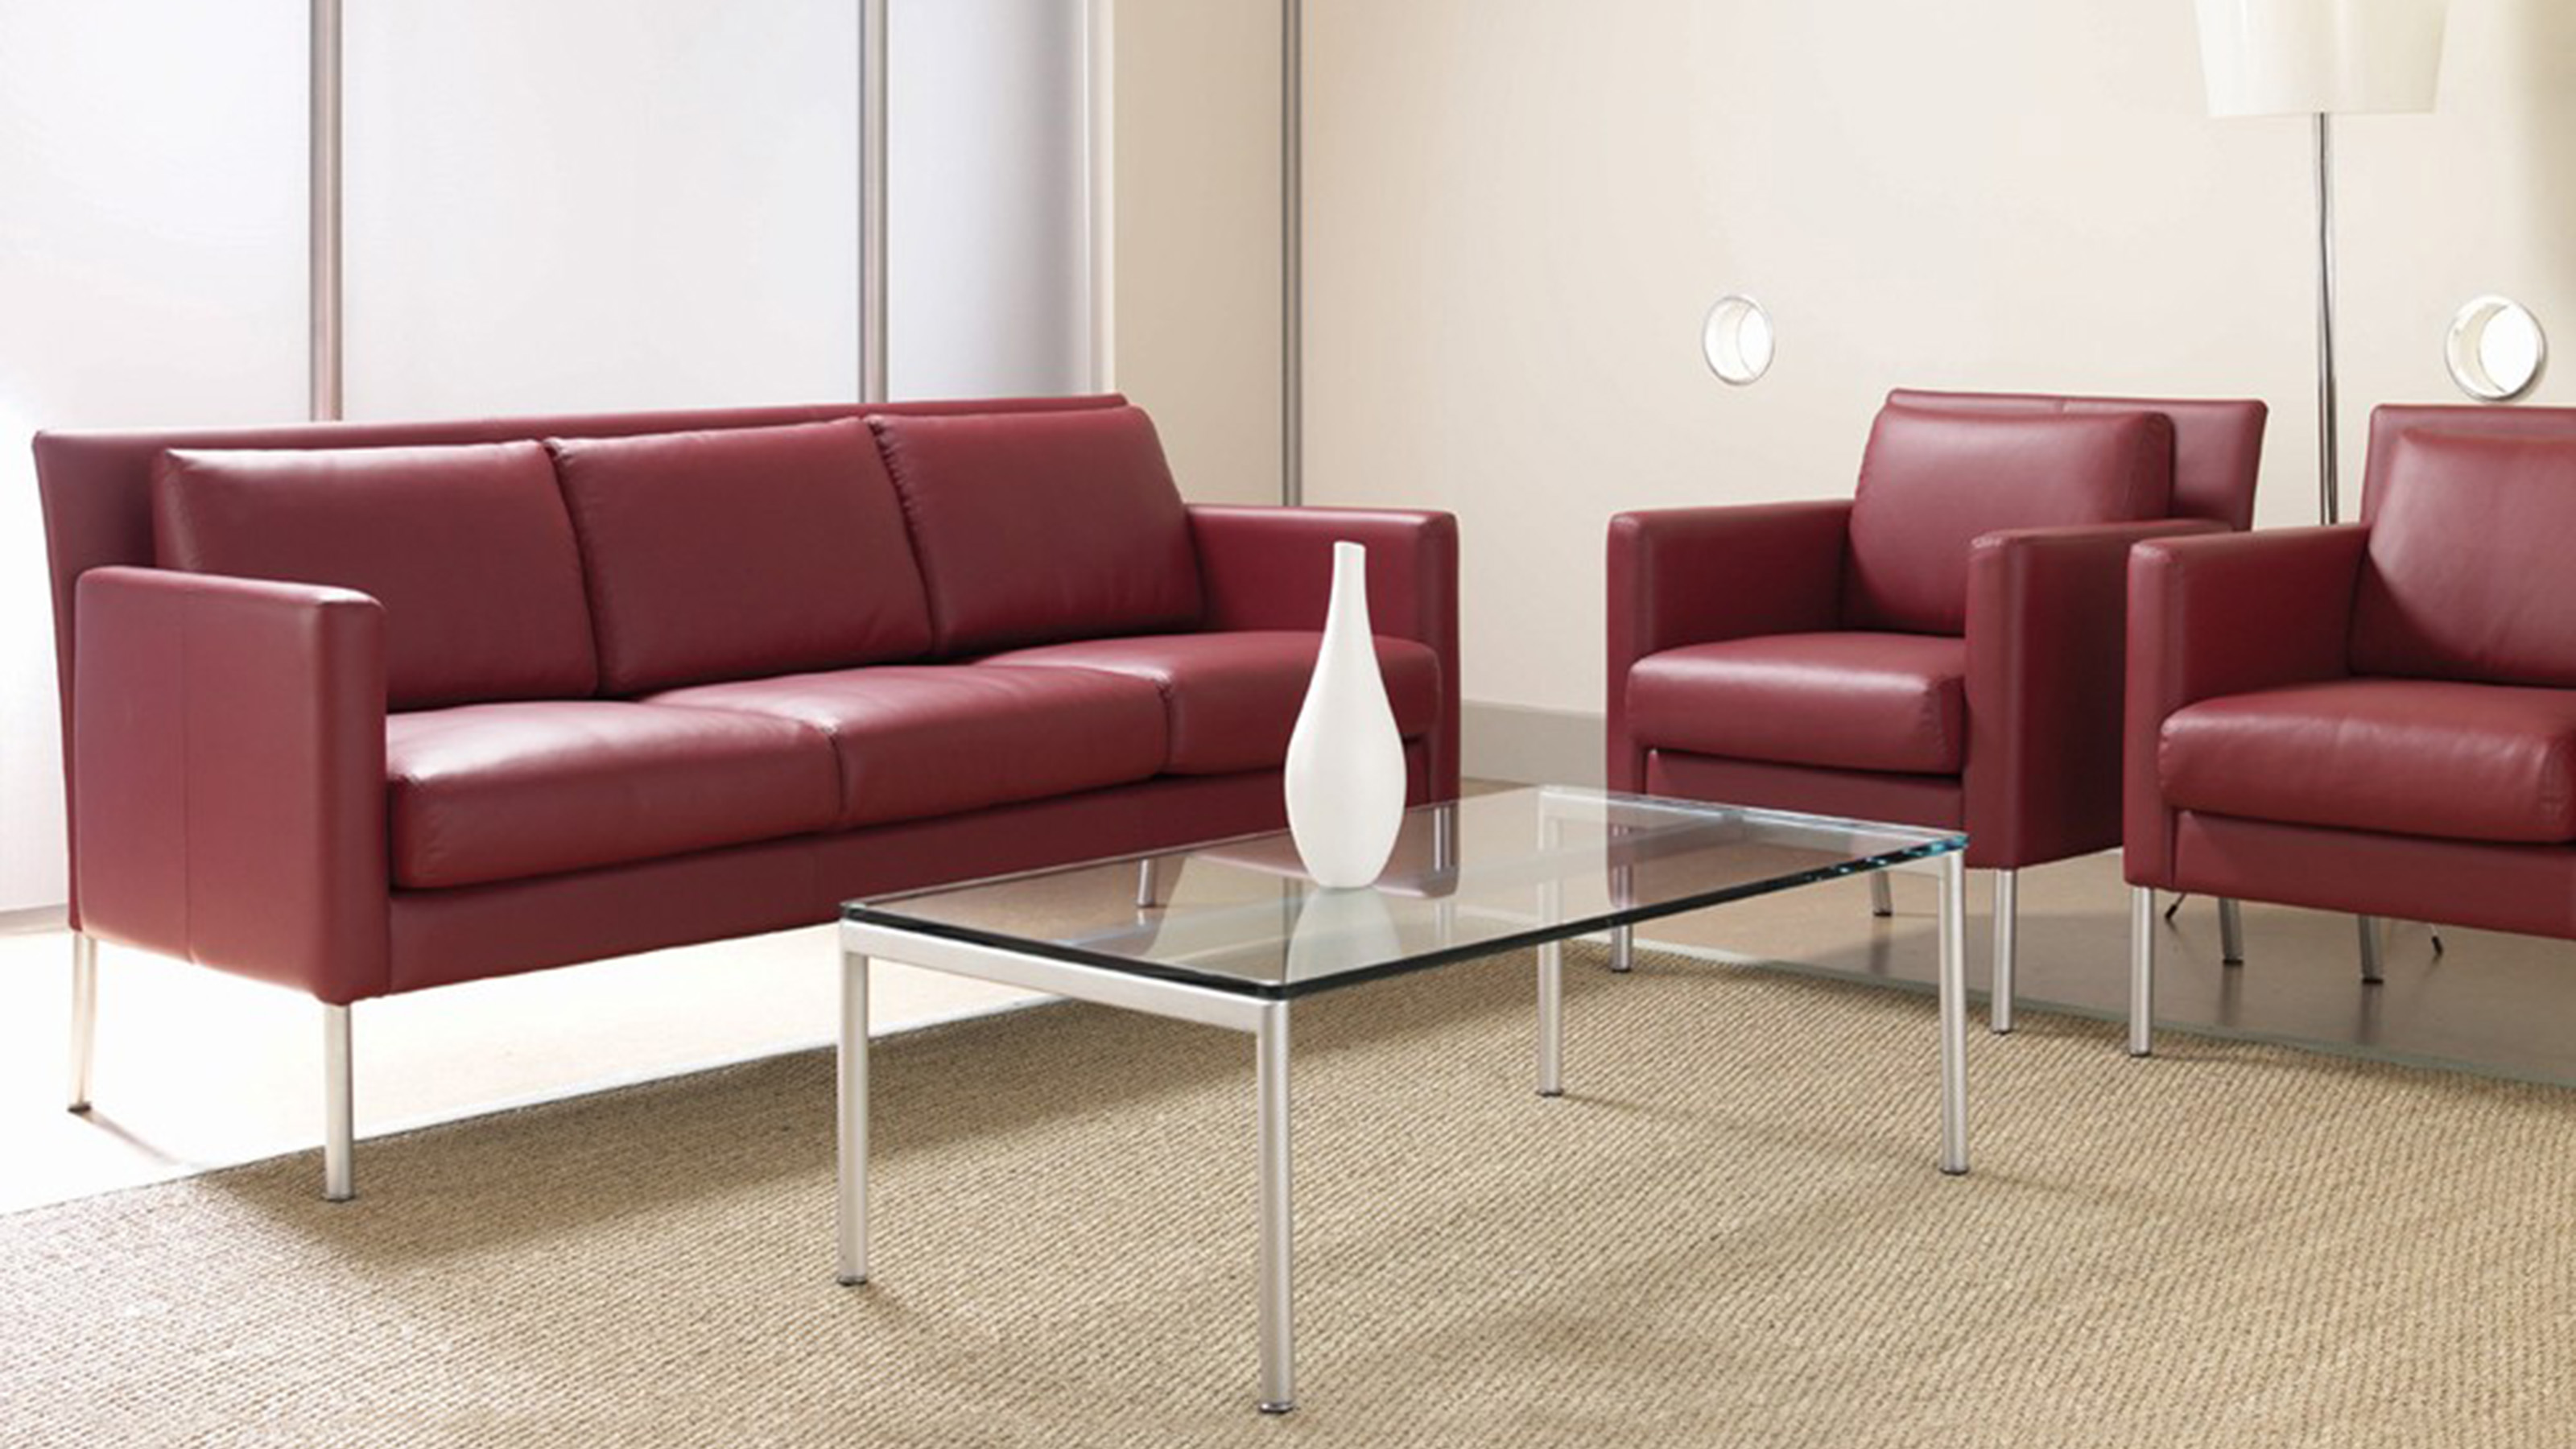 Coalesse Switch Table & Coffee Table Steelcase